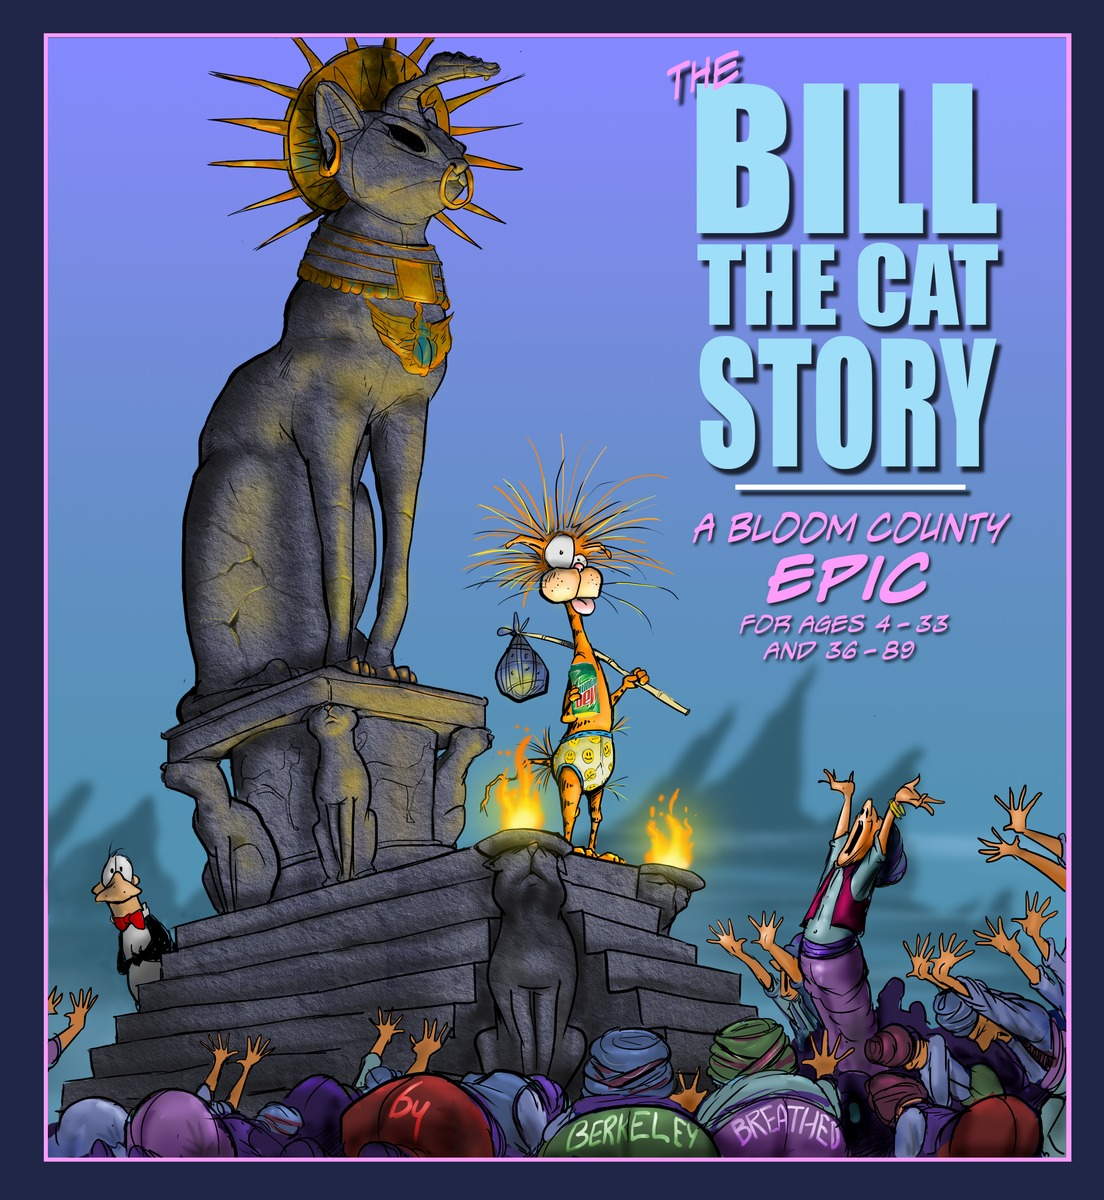 The Bill the Cat Story: A Bloom County Epic футболка рингер printio thbbft bill the cat